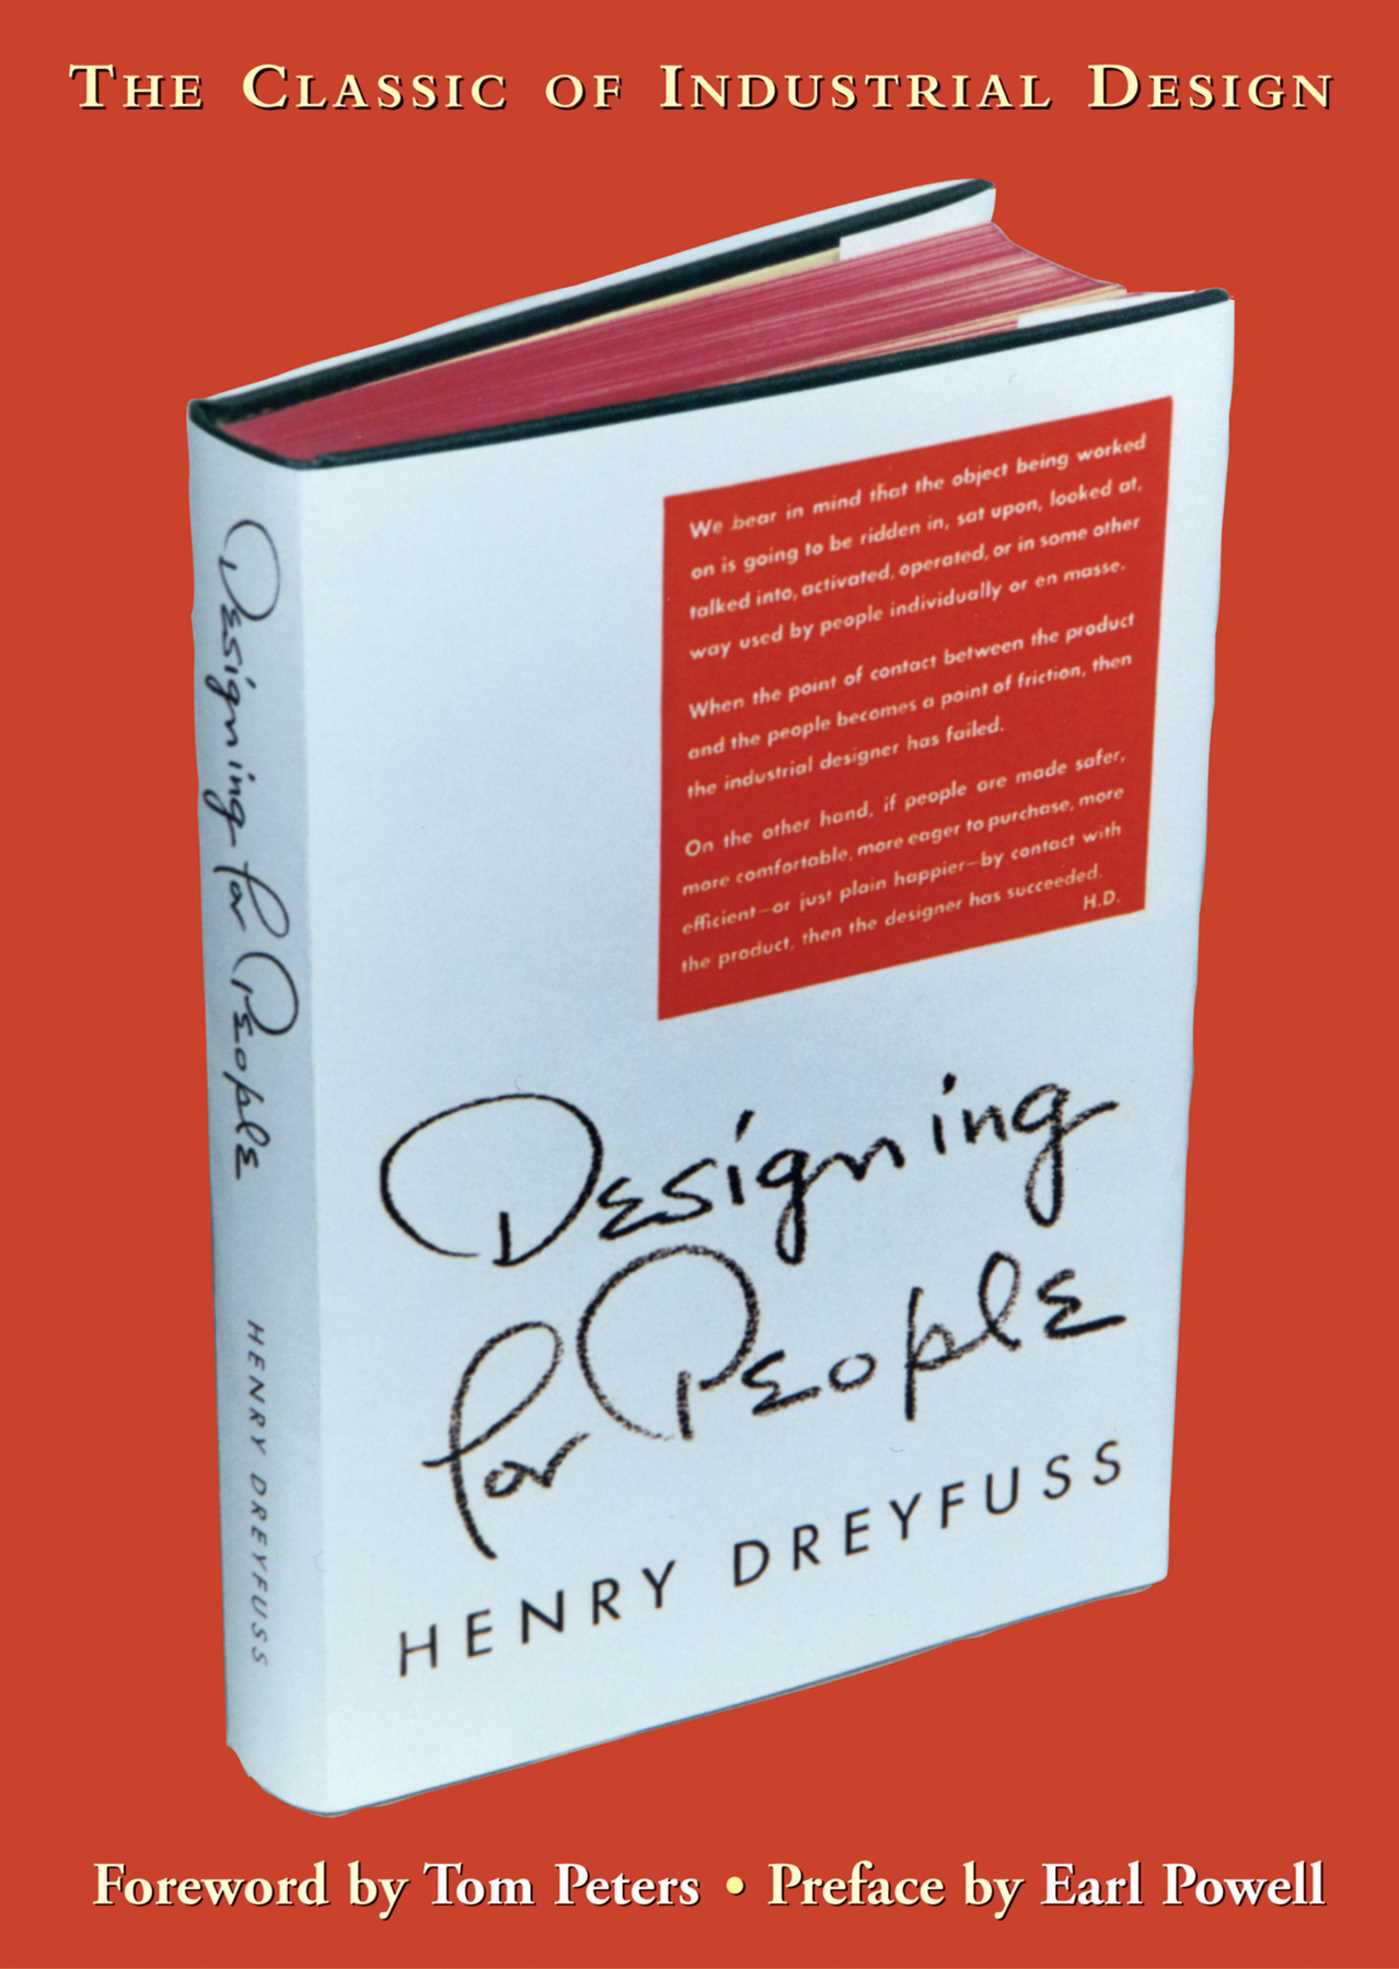 Book Cover of Designing for People